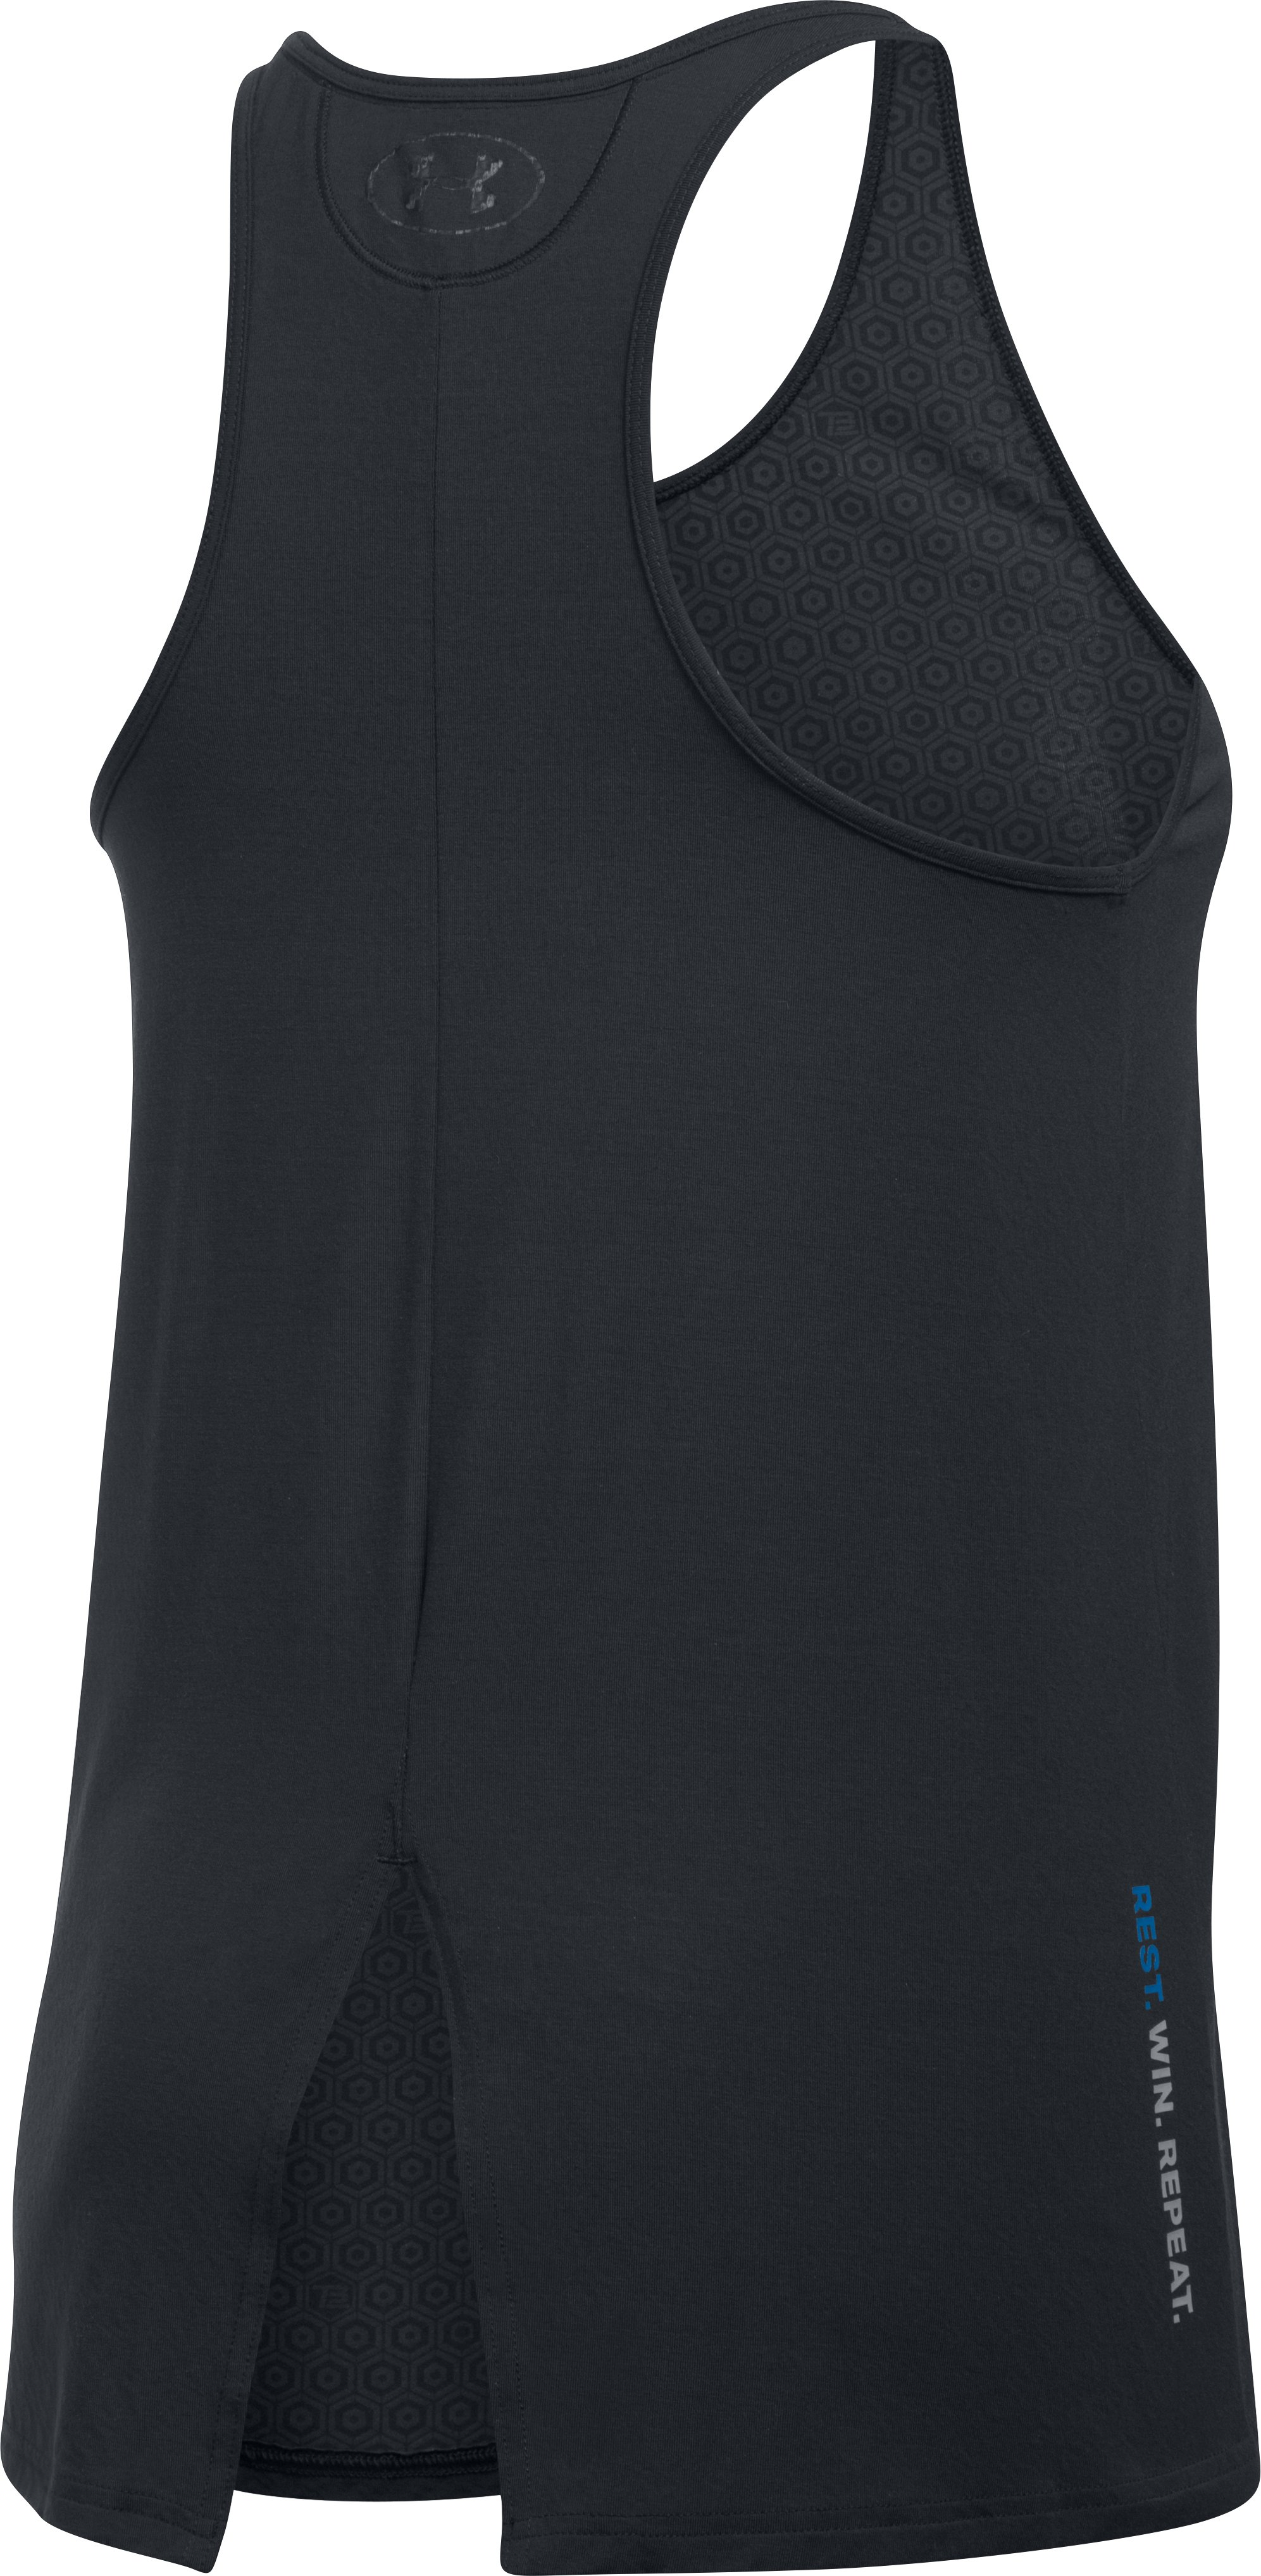 Women's Athlete Recovery Ultra Comfort Sleepwear Tank, Black ,